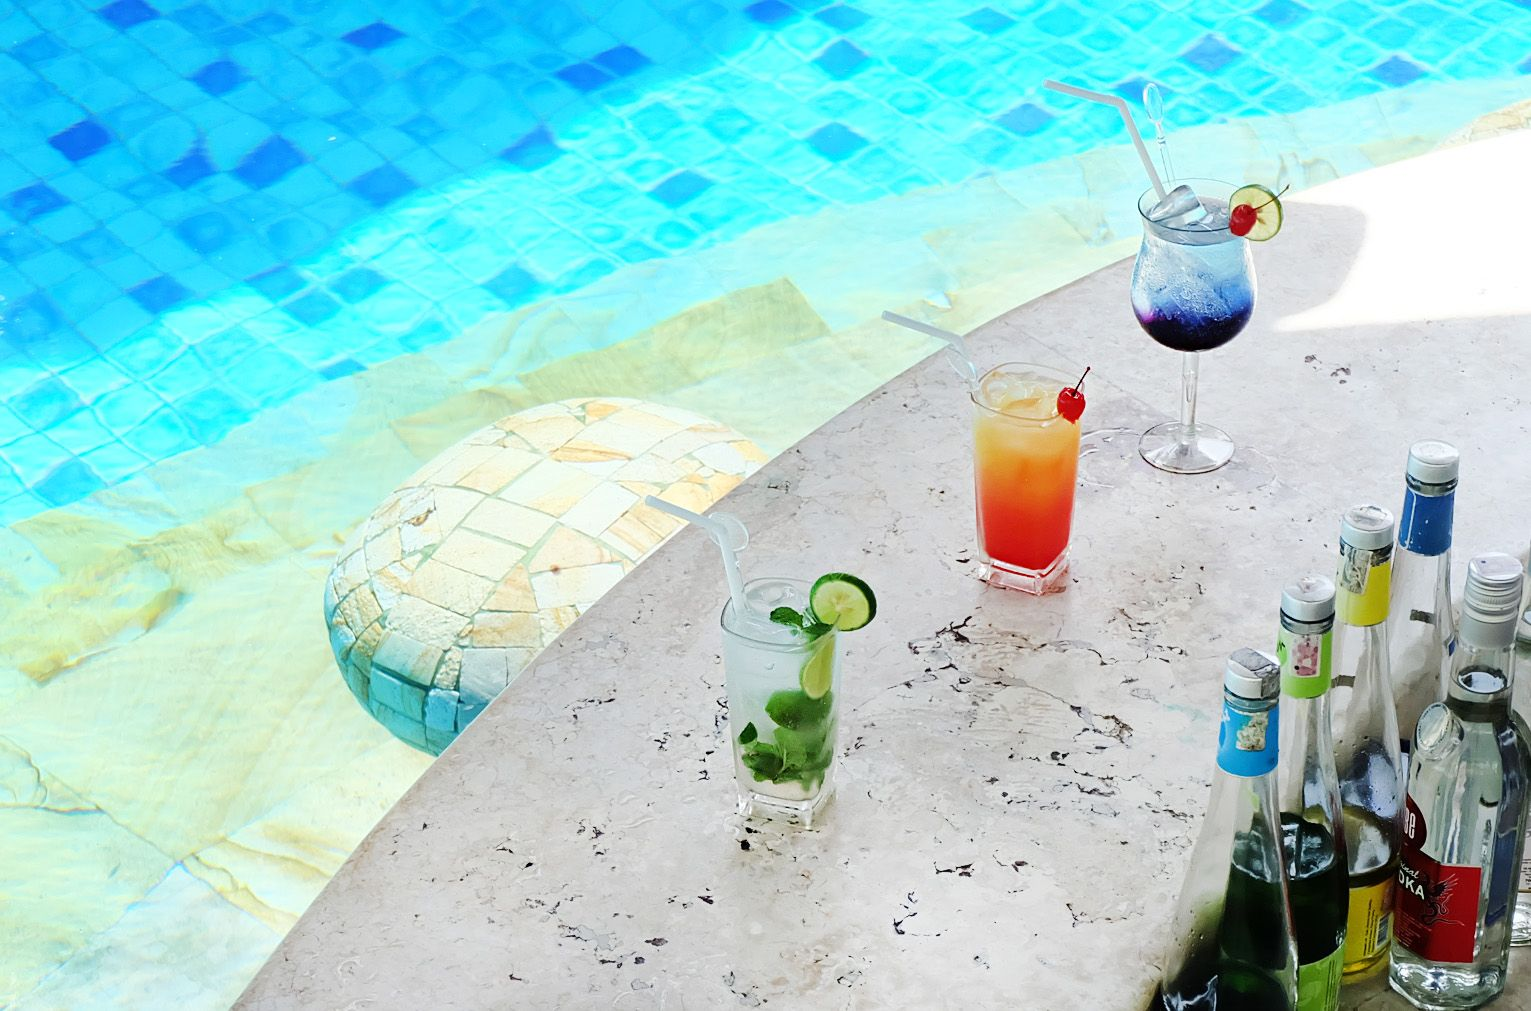 """Don't miss out our """"Buy 2 Get 1 Free"""" which makes Happy Hour Fiesta our guests' all-time favorite! Available daily at Celepook Pool Bar from 5 p.m. to 6:00 p.m.  #TheTanjungBenoaBeachResortBali #TheTanjungBenoa #Bali"""